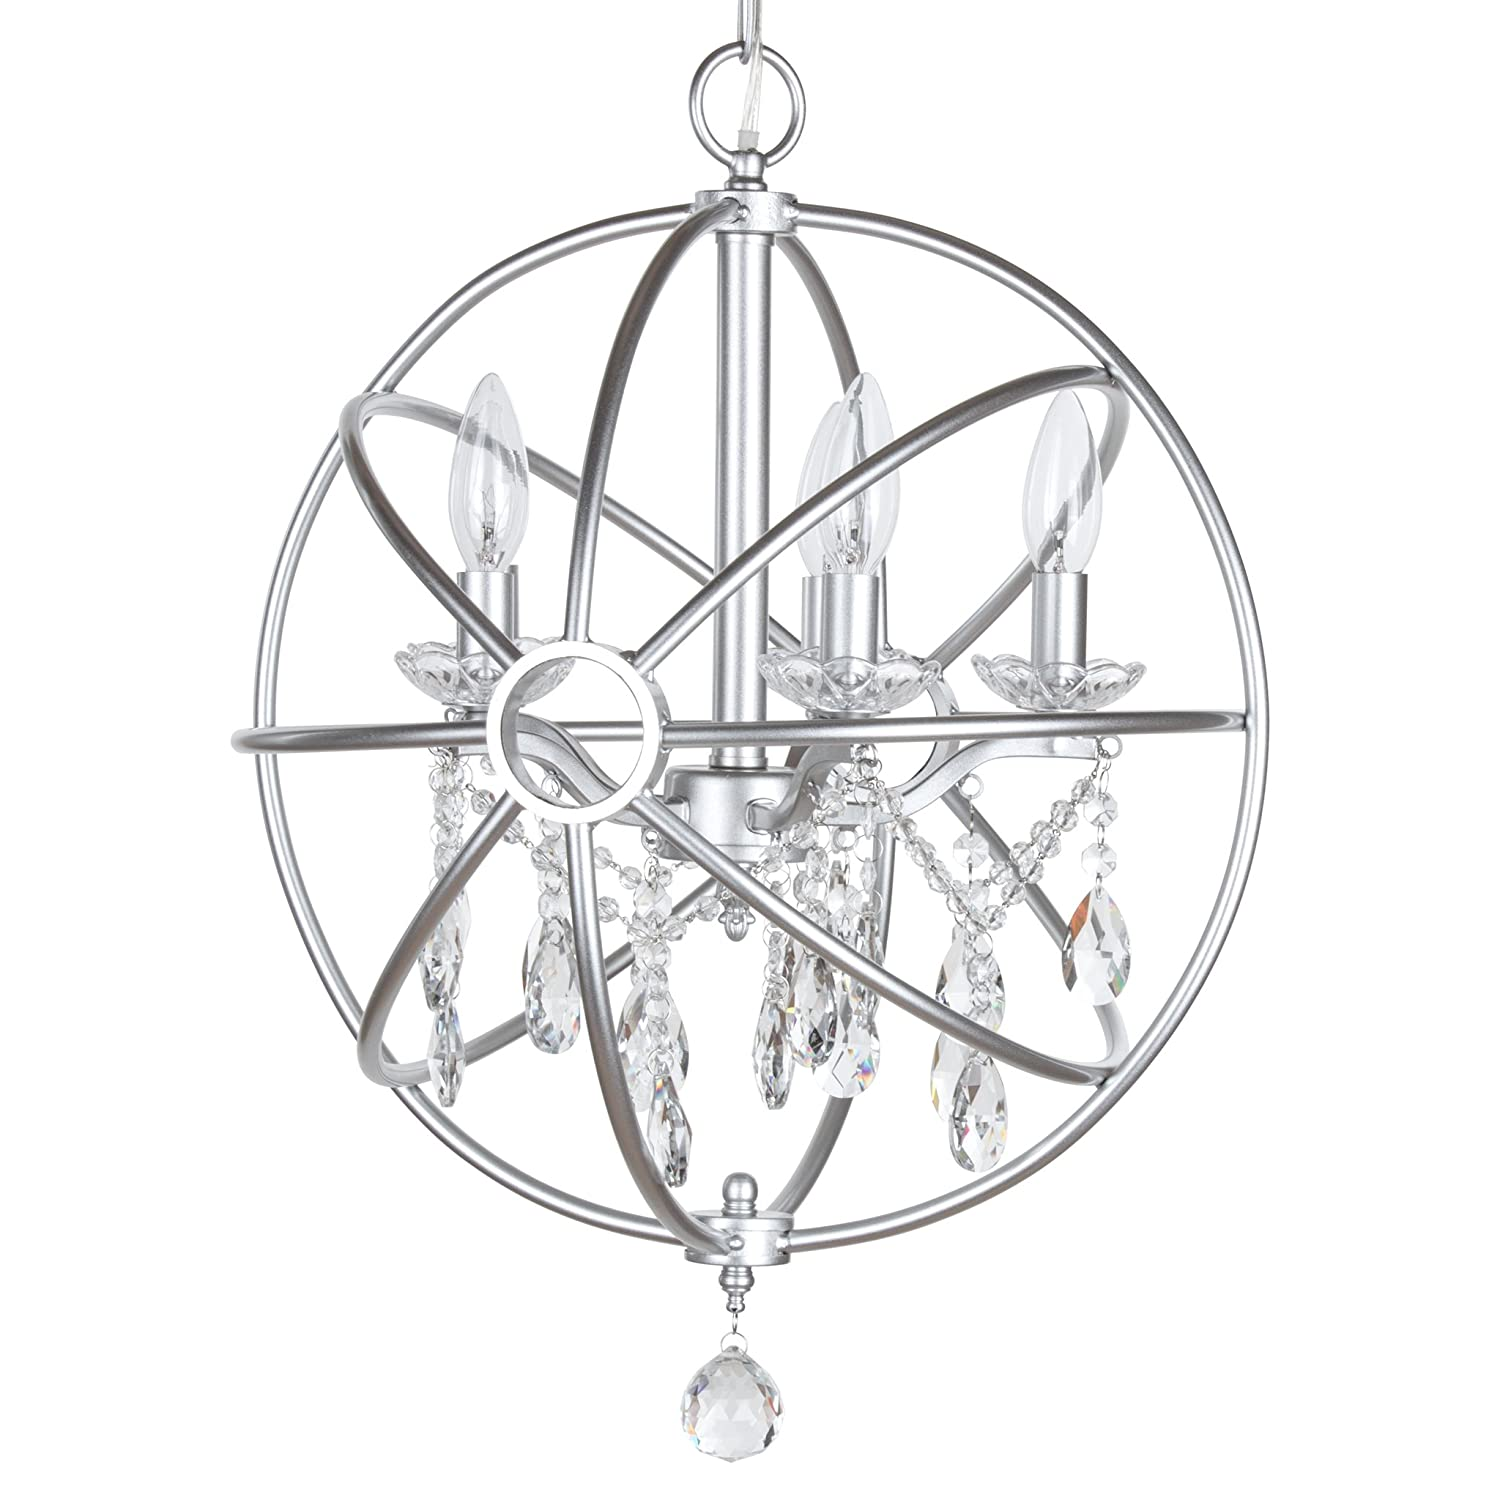 Luna collection modern orb crystal swag chandelier with 5 lights sphere glass pendant ceiling lighting fixture silver